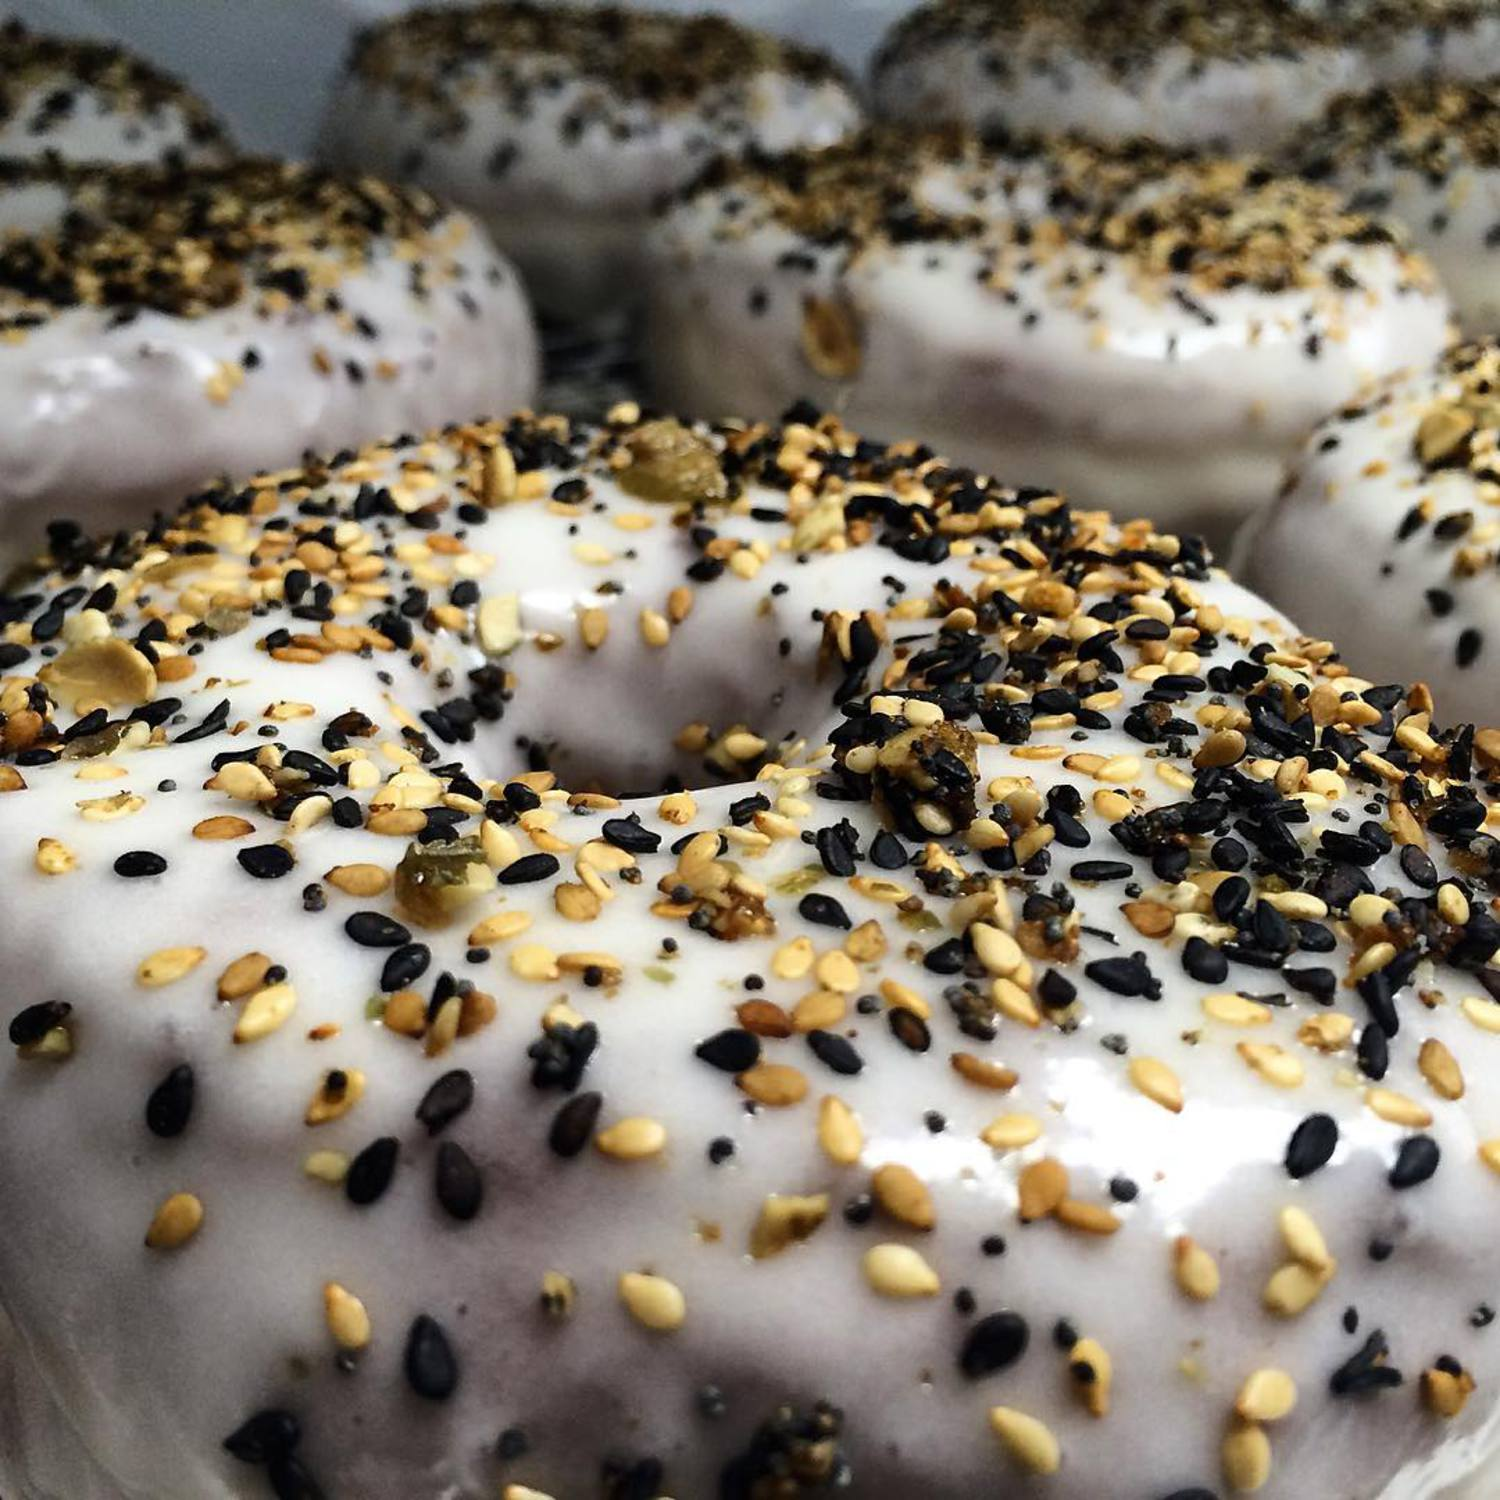 This is our new Everything Doughnut: Cream Cheese Glaze with Sesame Seeds, Poppy Seeds, Pepitas, Garlic & Sea Salt. 😋🍩 #TDPNYC #doughnuts #donuts #yum #nyc #newyork #everything #instadaily #instafood #instagood #fun #smile #westvillage #monday #wemakefun #enjoy #food #foodie